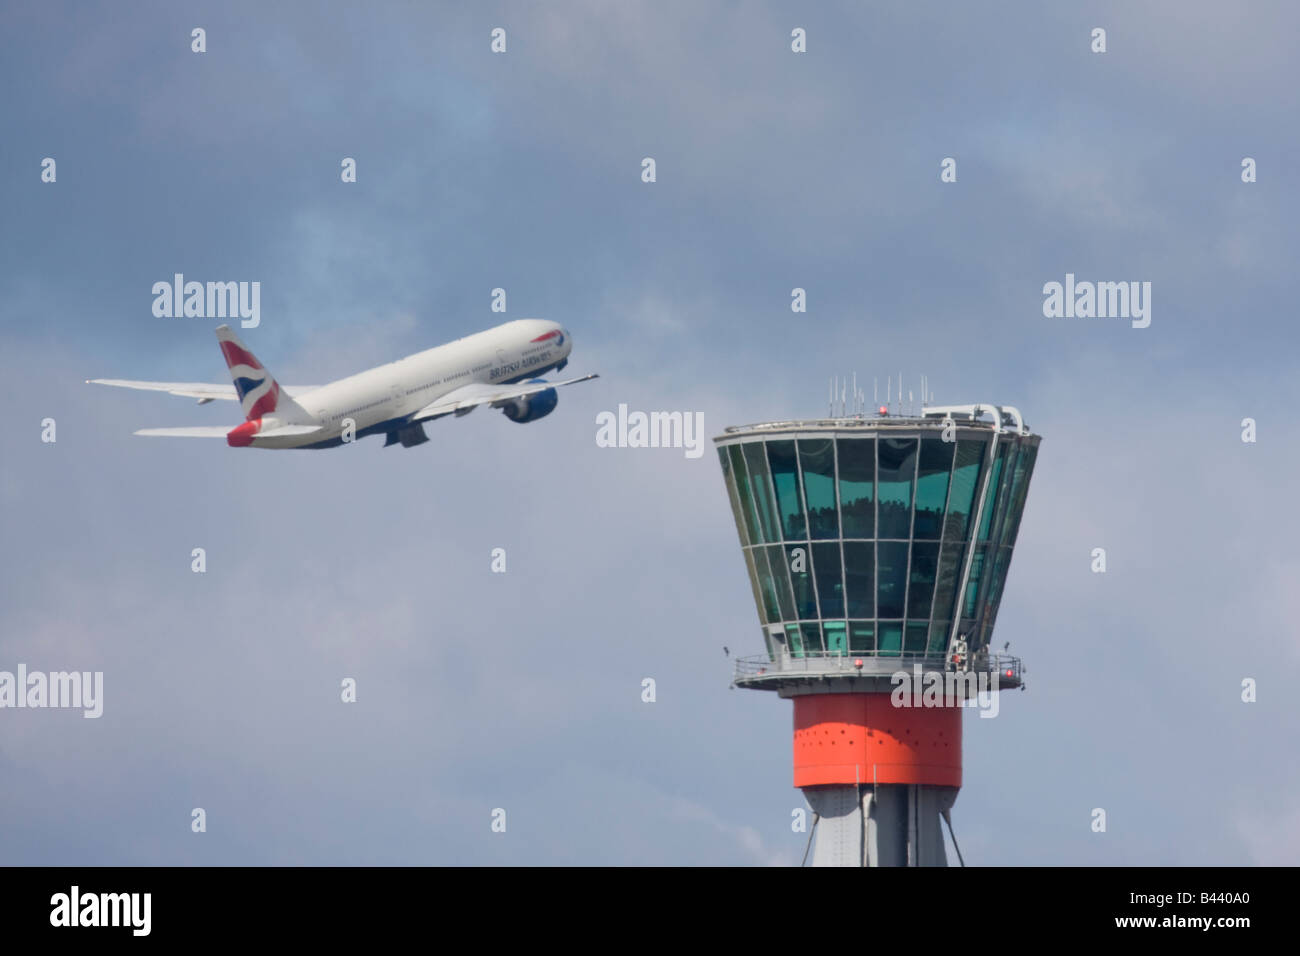 British Airways Boeing 777 taking off in the background of London Heathrow control tower. Stock Photo